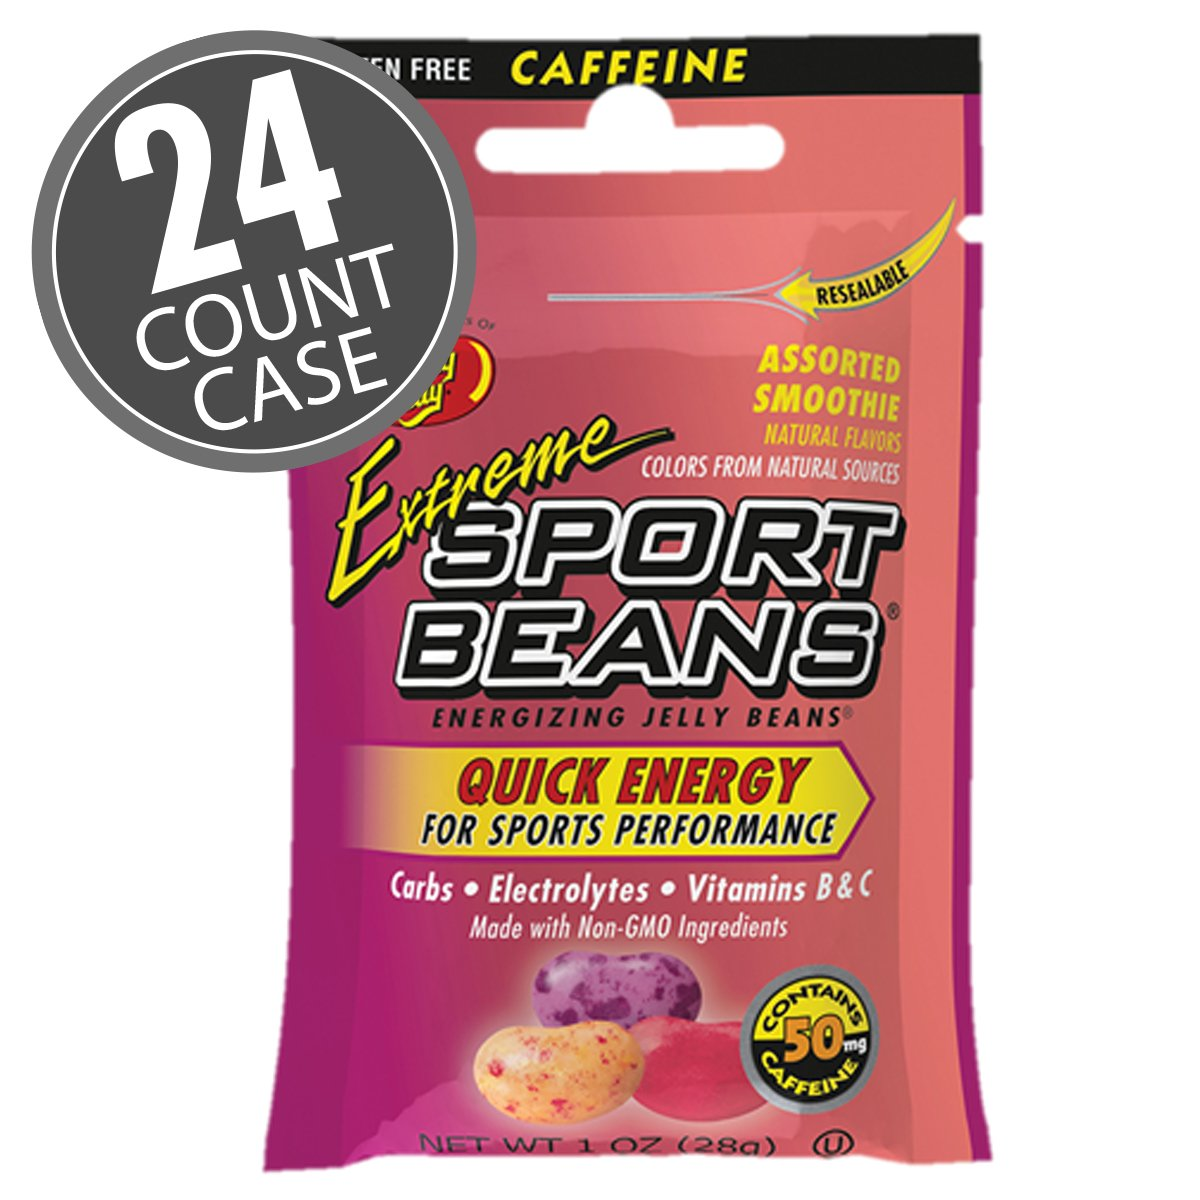 Jelly Belly Extreme Sport Beans, Caffeinated Jelly Beans, 24 Pack, 1-oz Each (Smoothie Assorted Caffeinated) by Jelly Belly